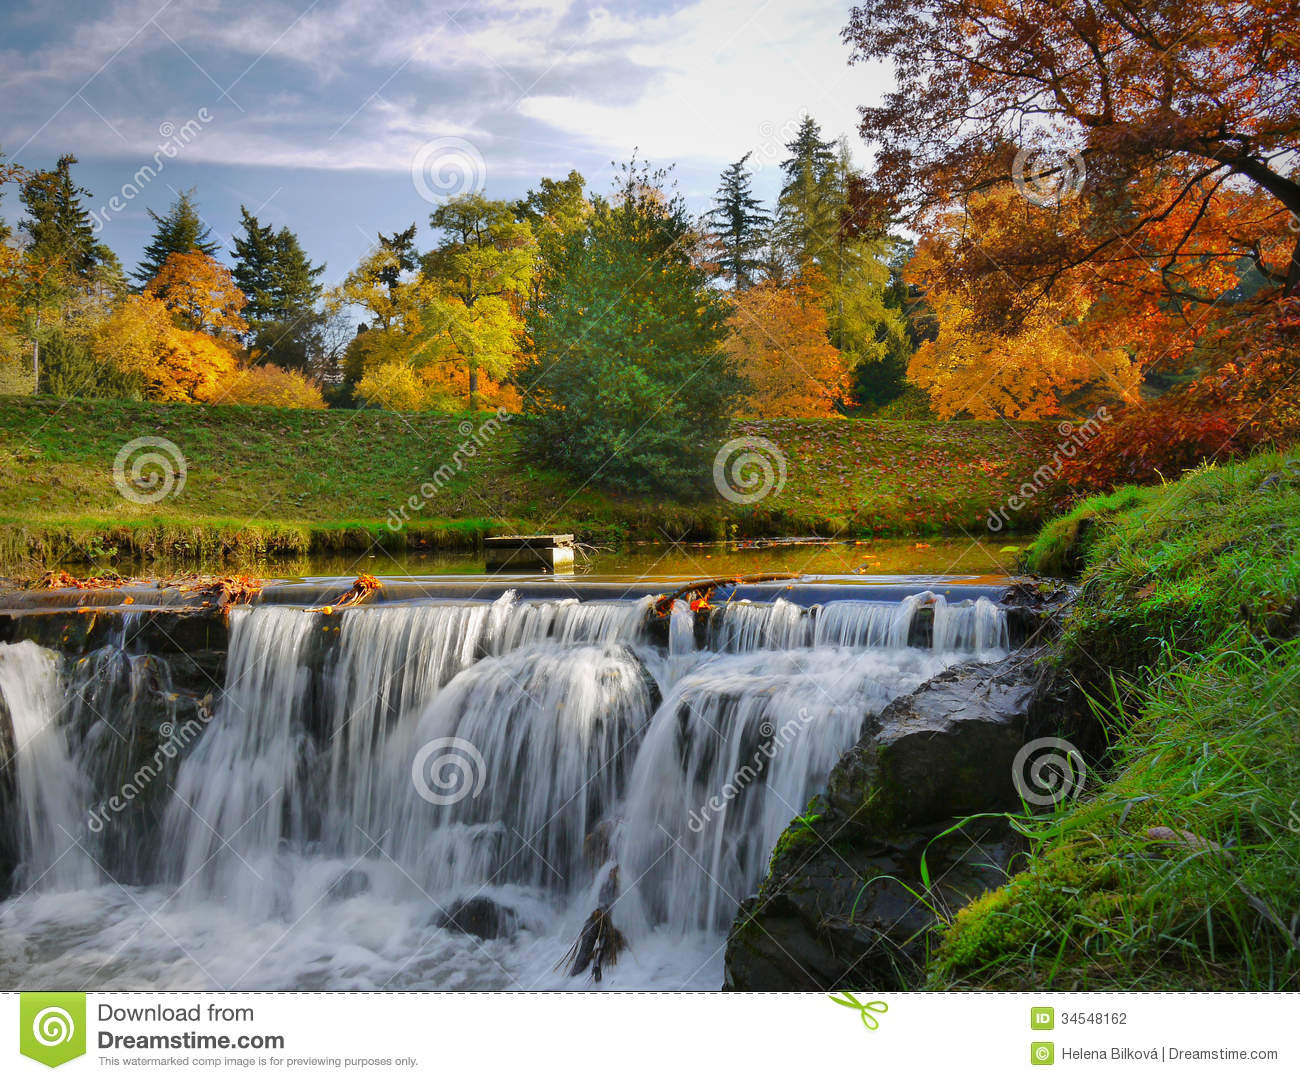 Download Autumn Scenery Waterfalls Park Landscape Stock Photo - Image of morning, seasonal: 34548162